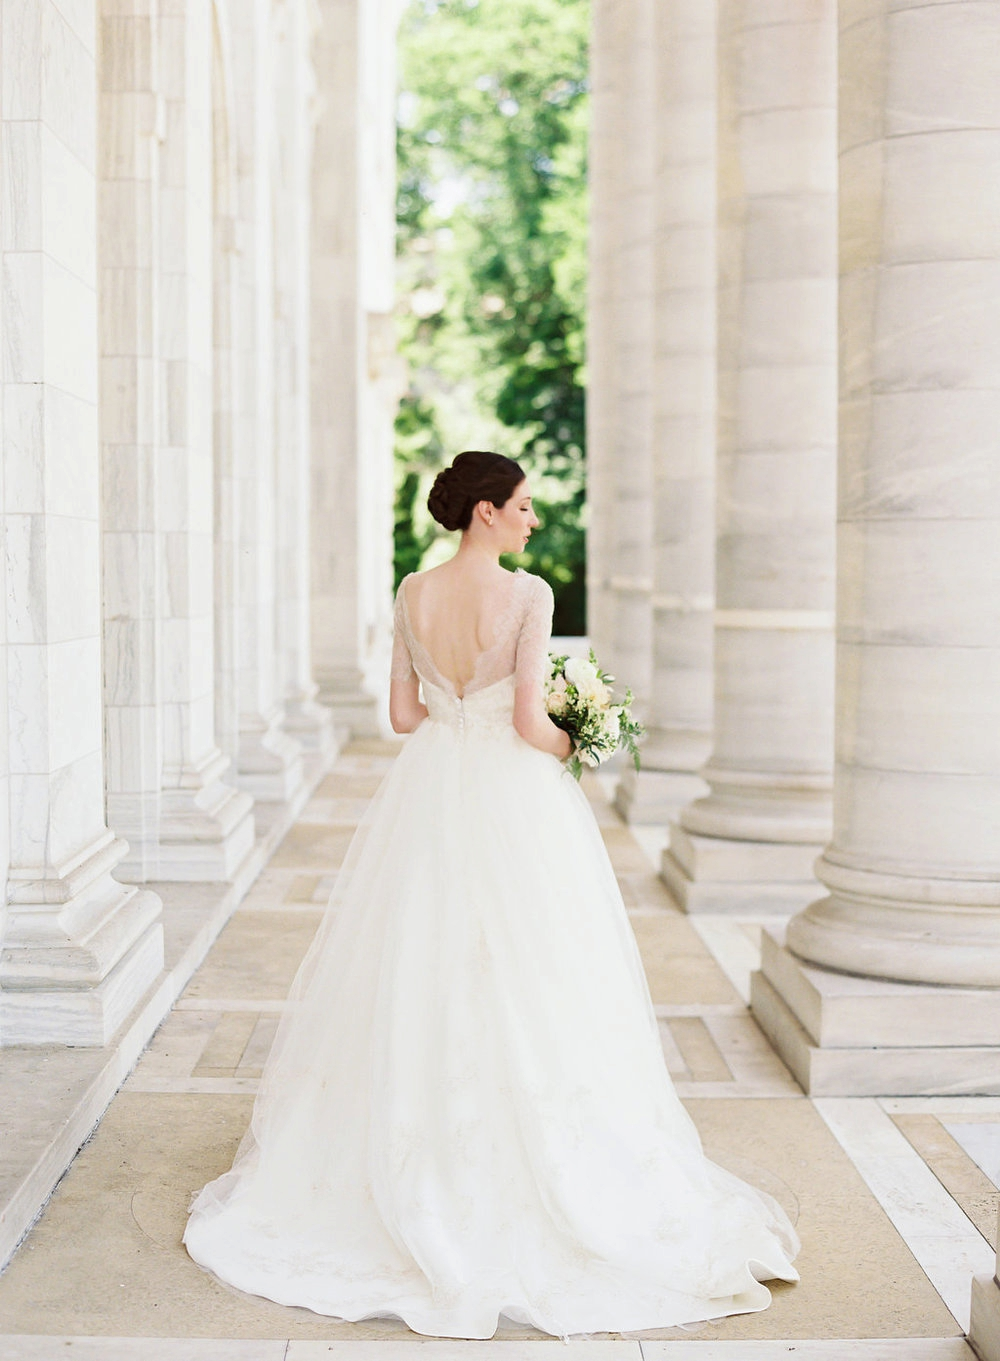 Vicki Grafton Photography - Fine Art DC Virginia Charlottesville Film Wedding Photographer_0031.jpg